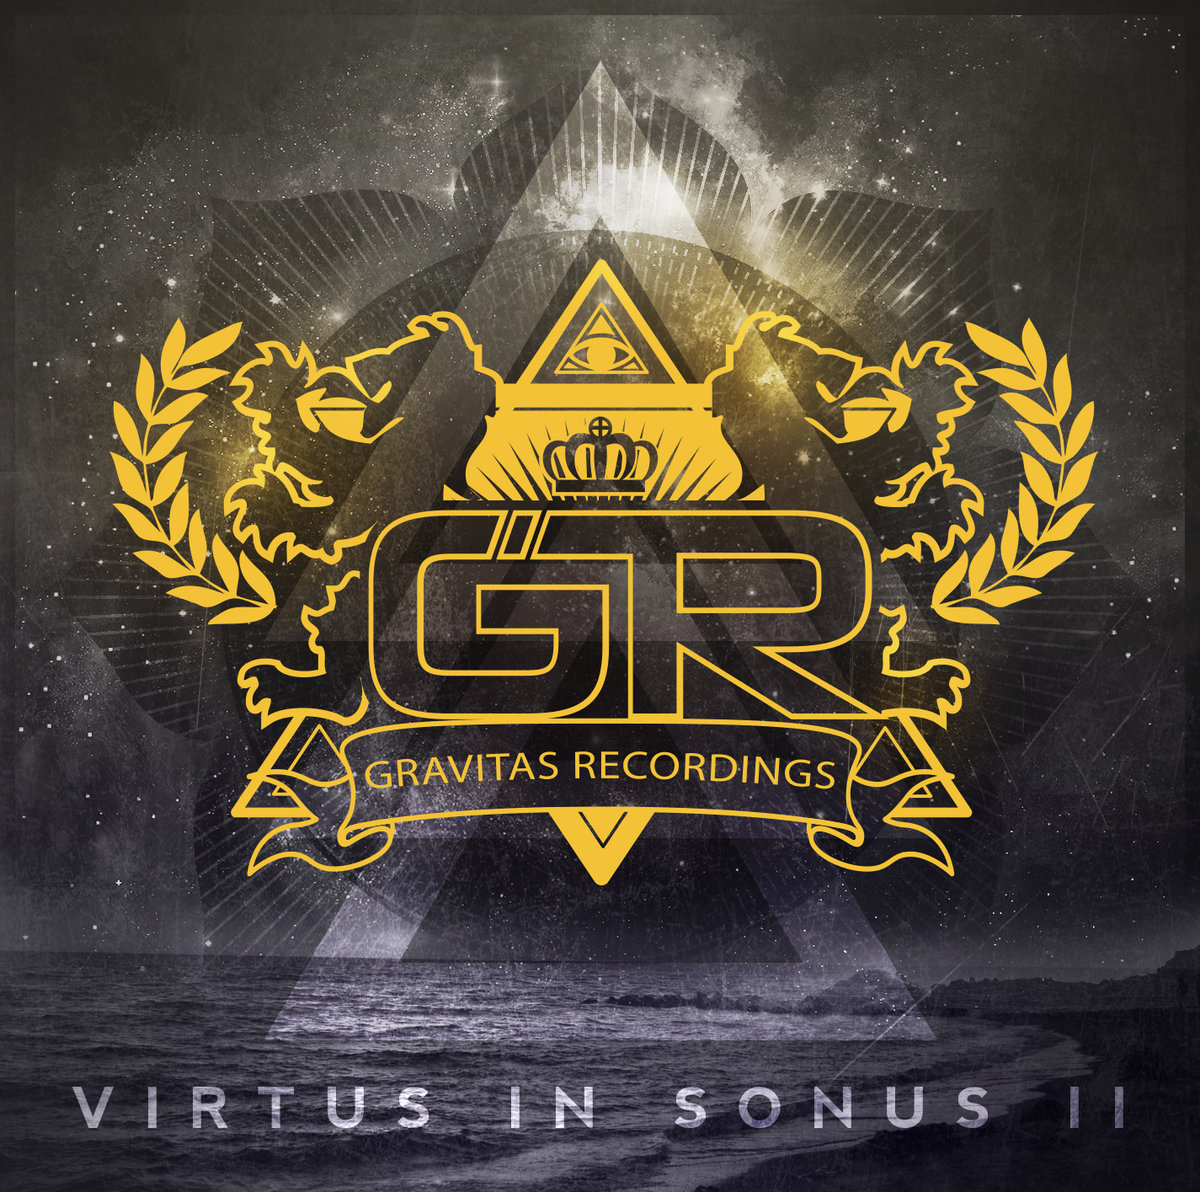 AMB - Southfields @ 'Virtus In Sonus II' album (Austin)